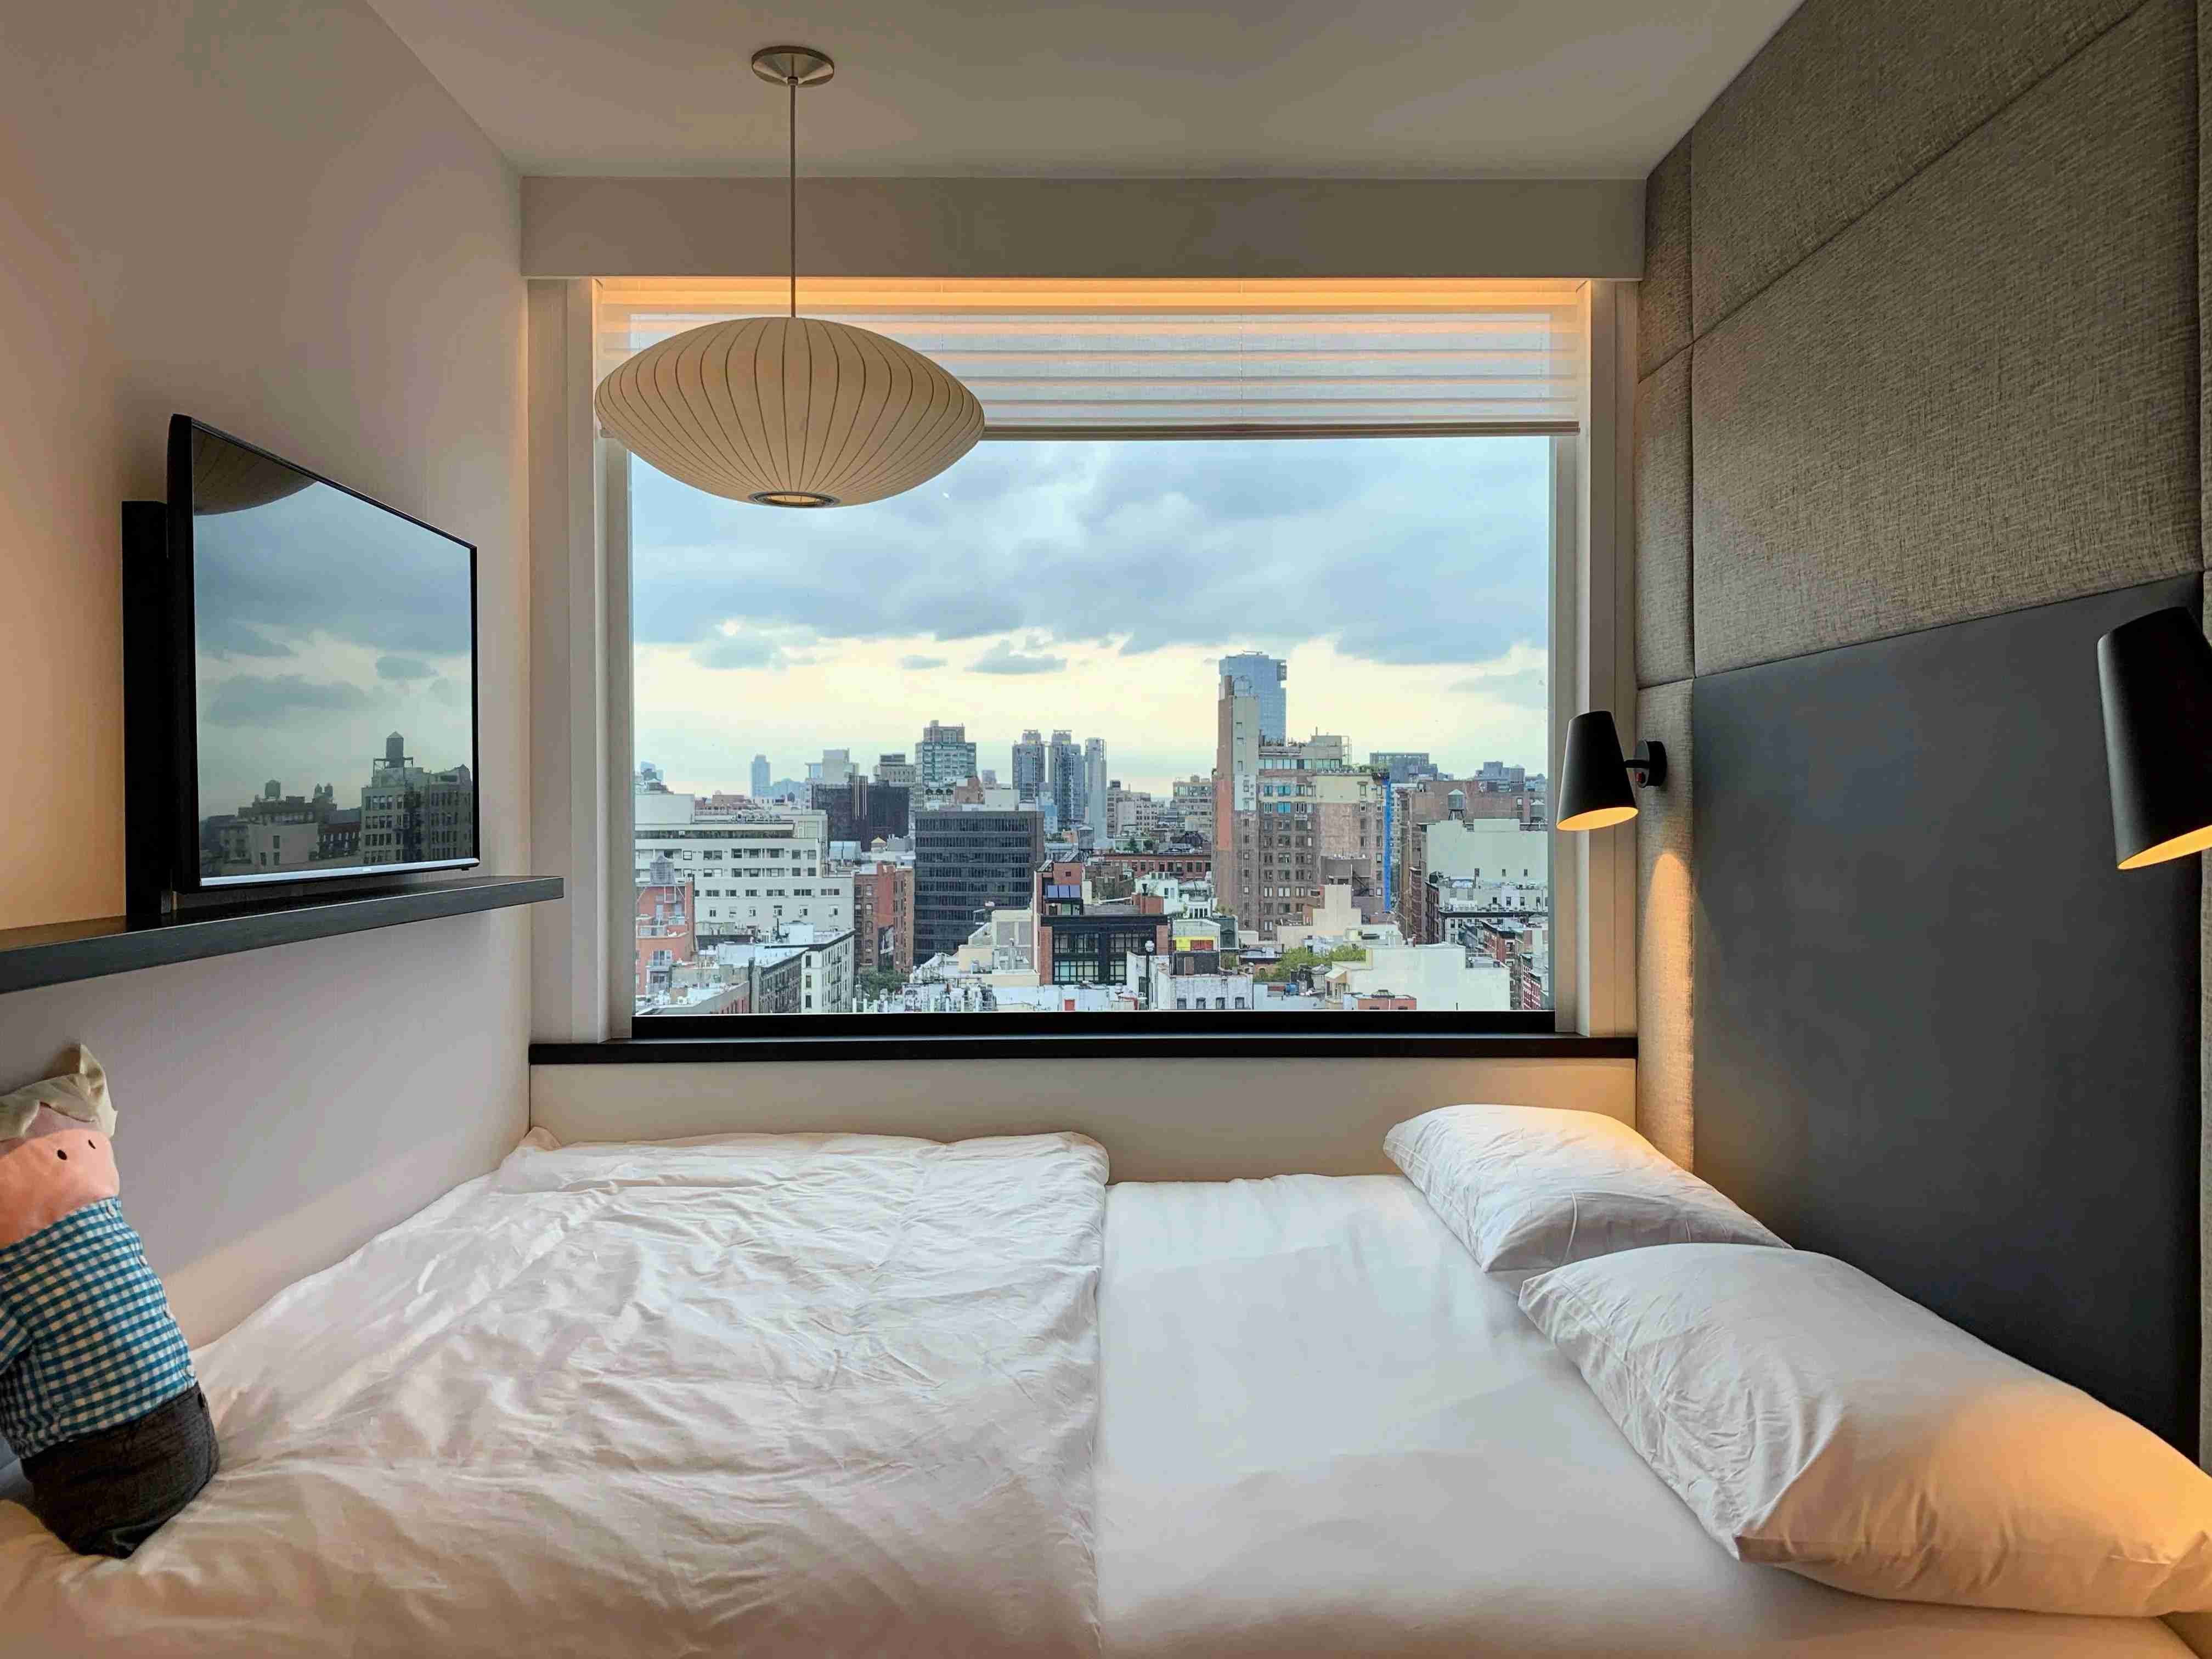 CitizenM Bowery New York Modular Hotel Room View (Photo by Darren Murph / The Points Guy)